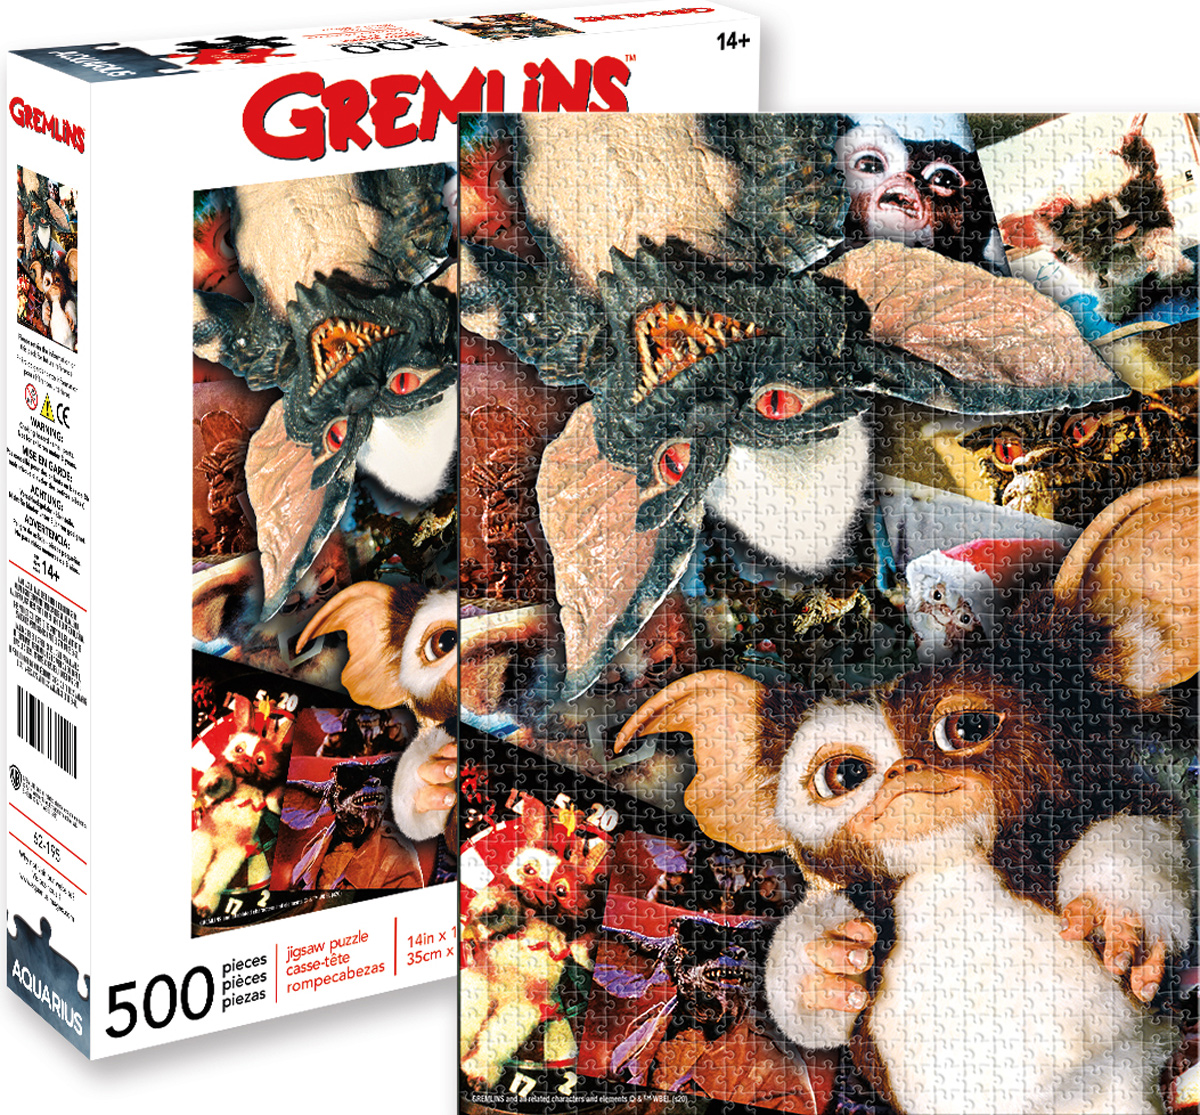 Gremlins Movies / Books / TV Jigsaw Puzzle